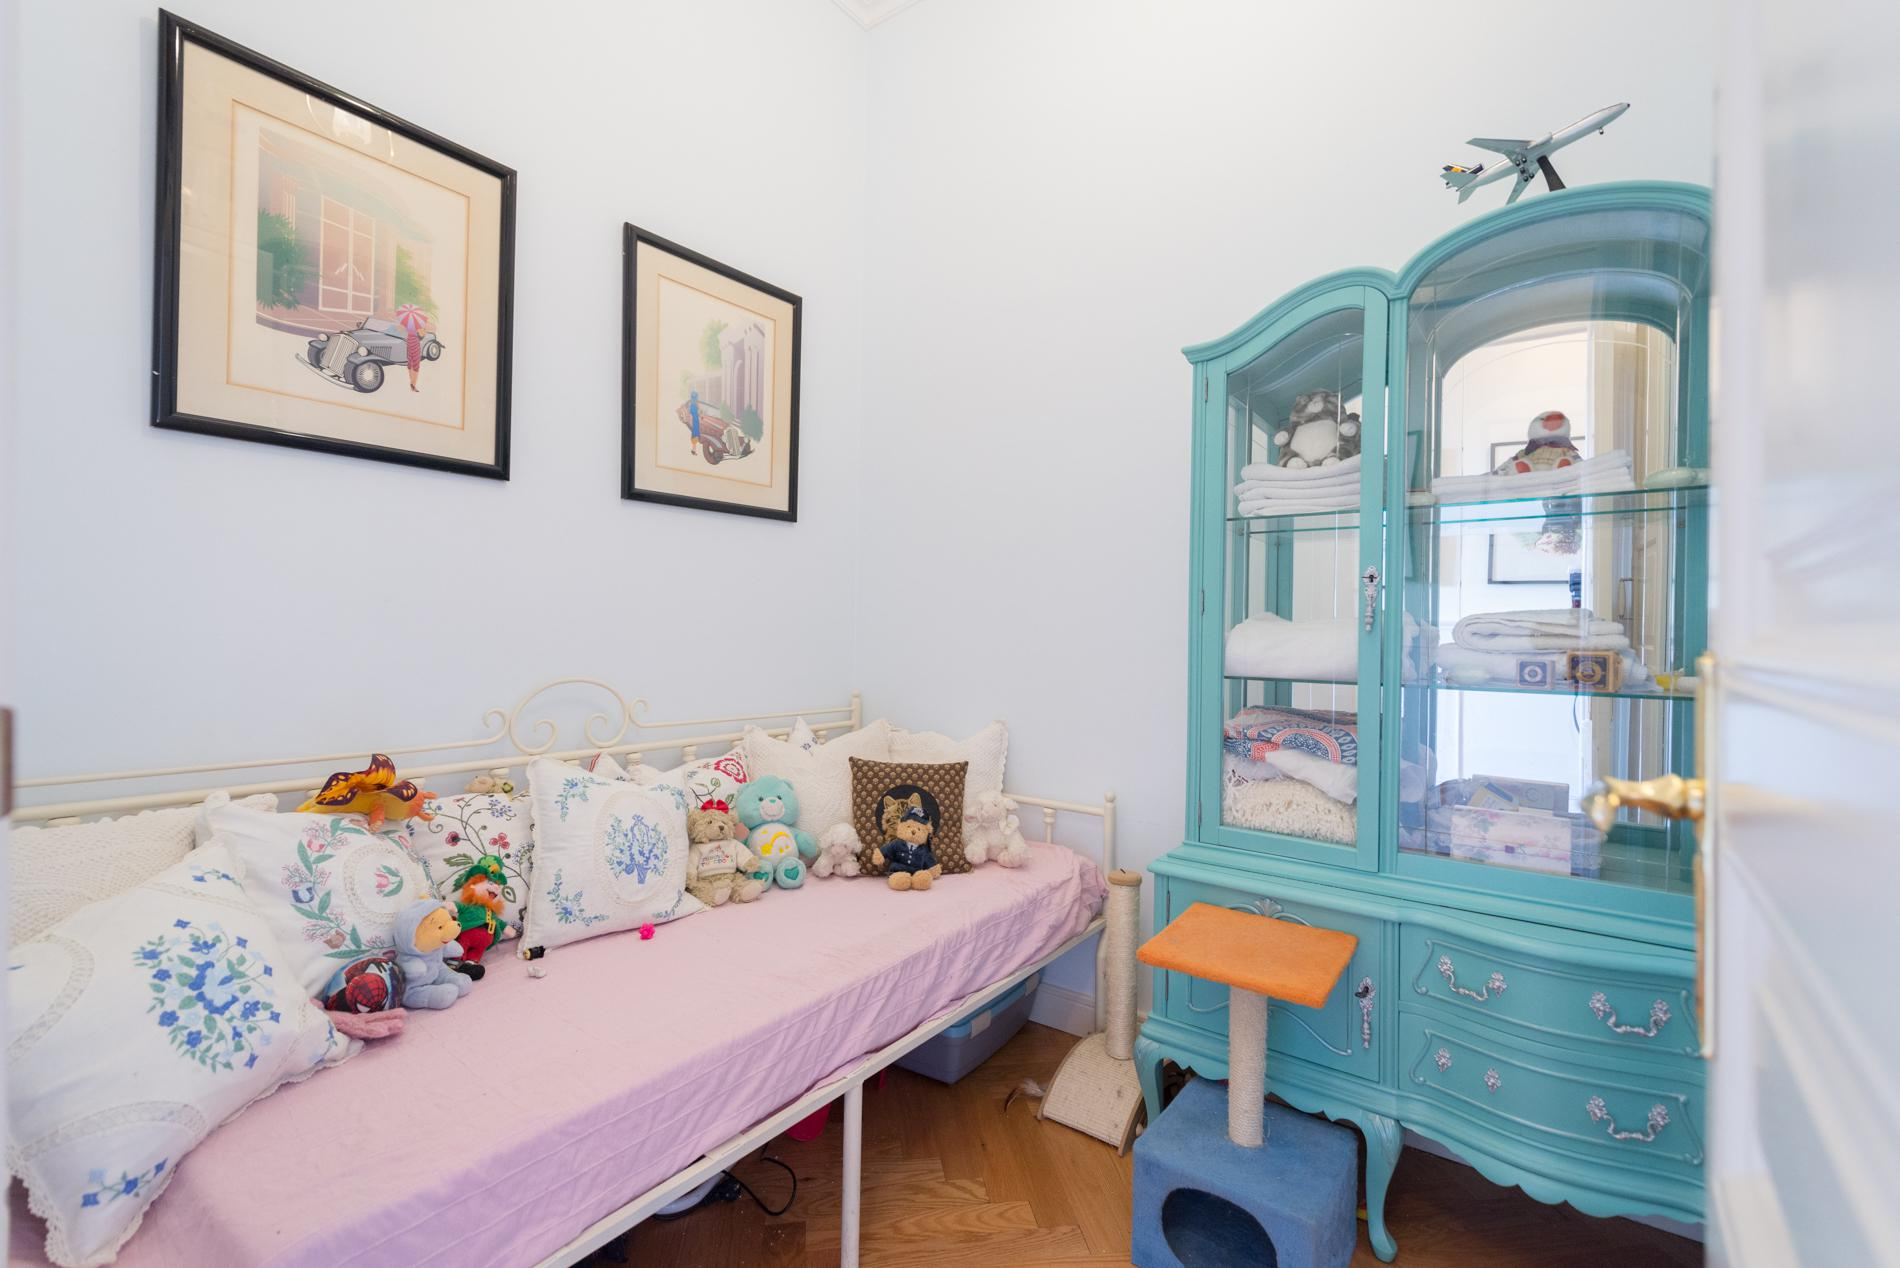 174066 Flat for sale in Eixample, Antiga Esquerre Eixample 17